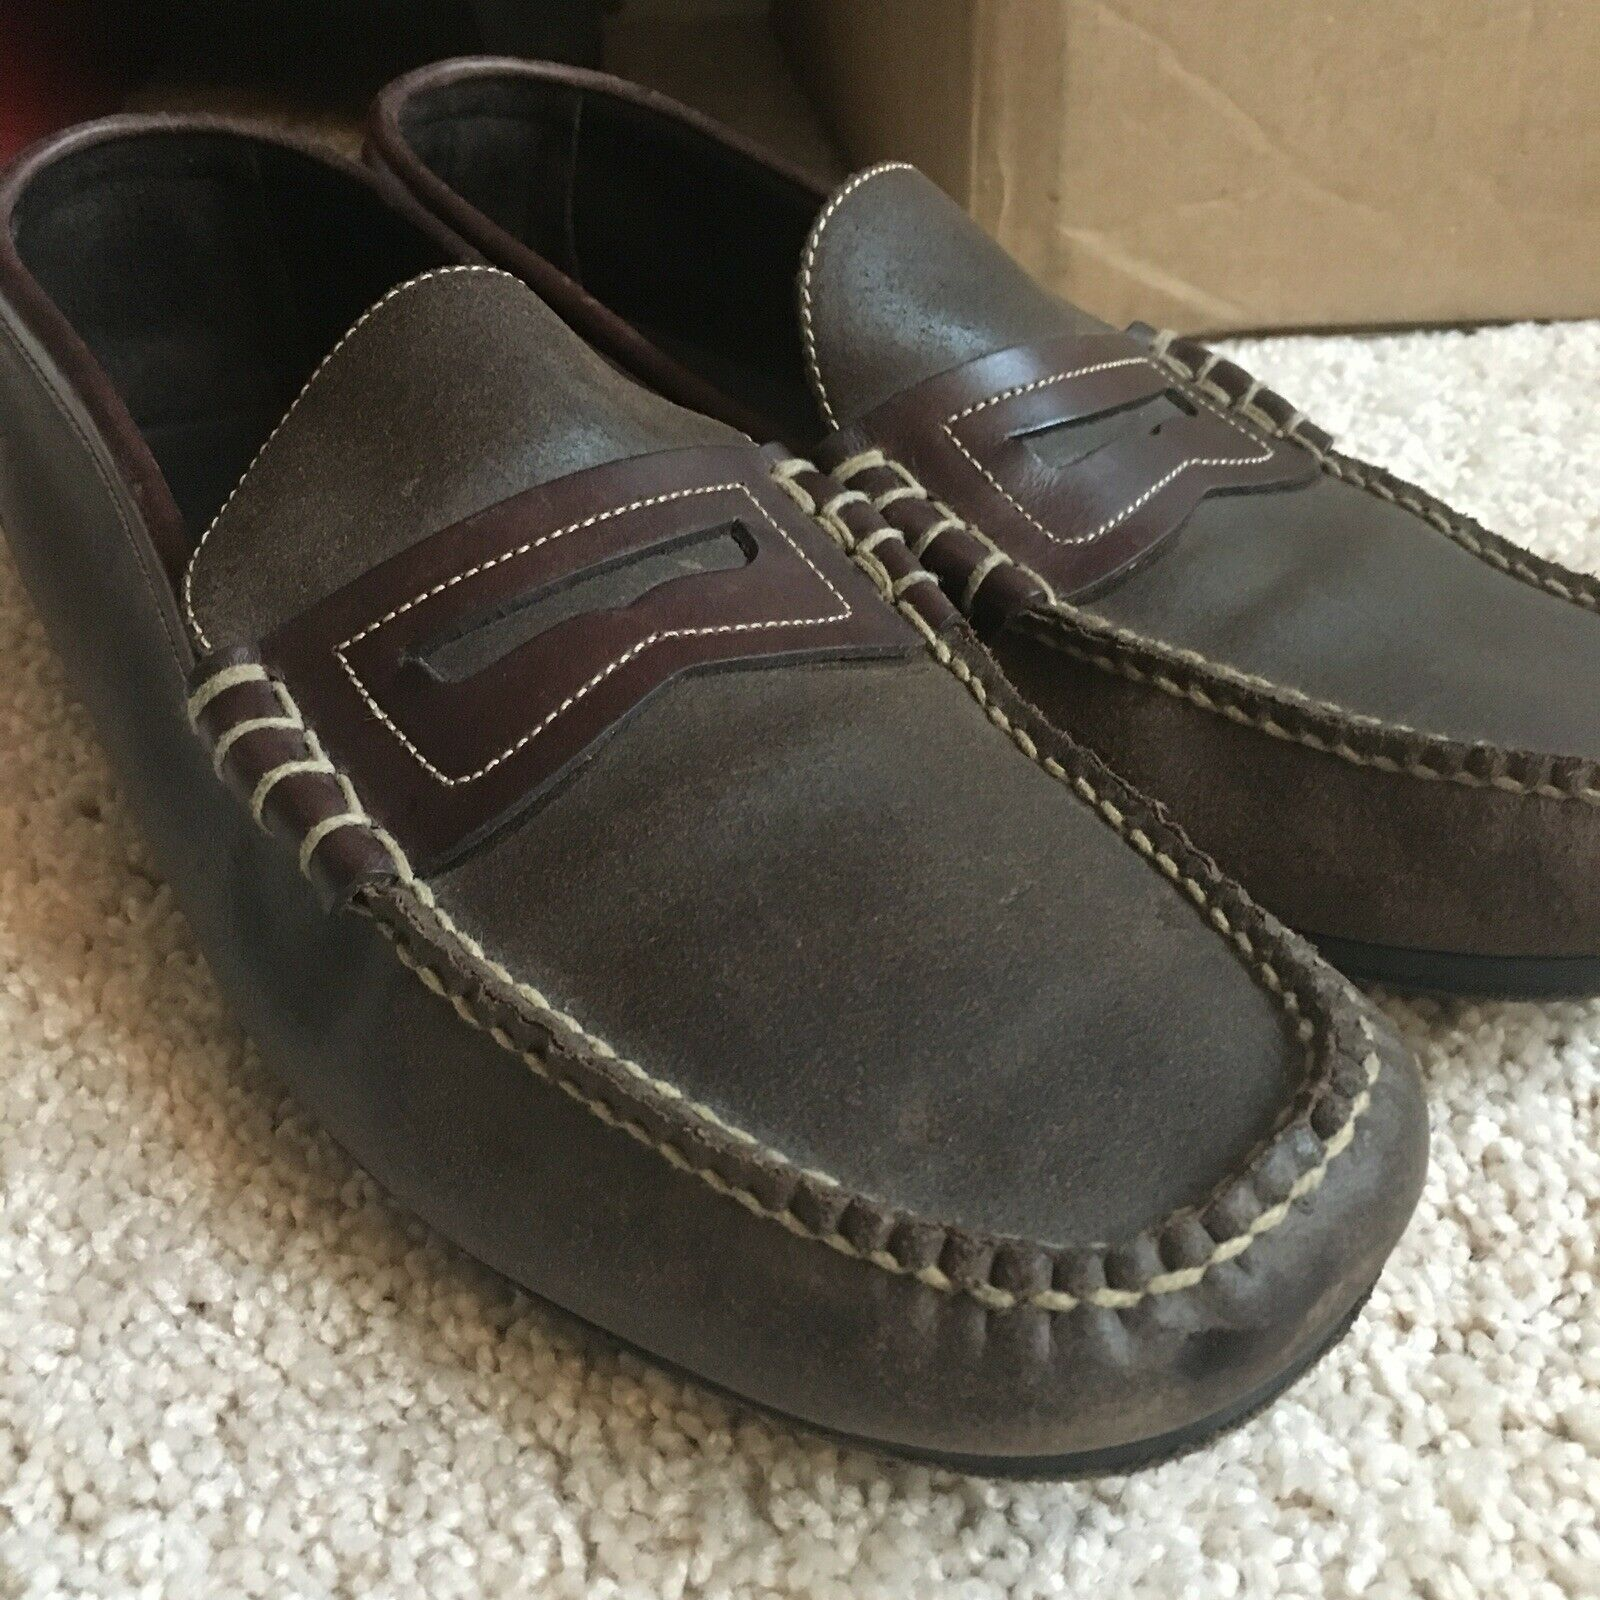 Cole Haan Brown Leather Slip On Loafers shoes Size 13 Medium Casual